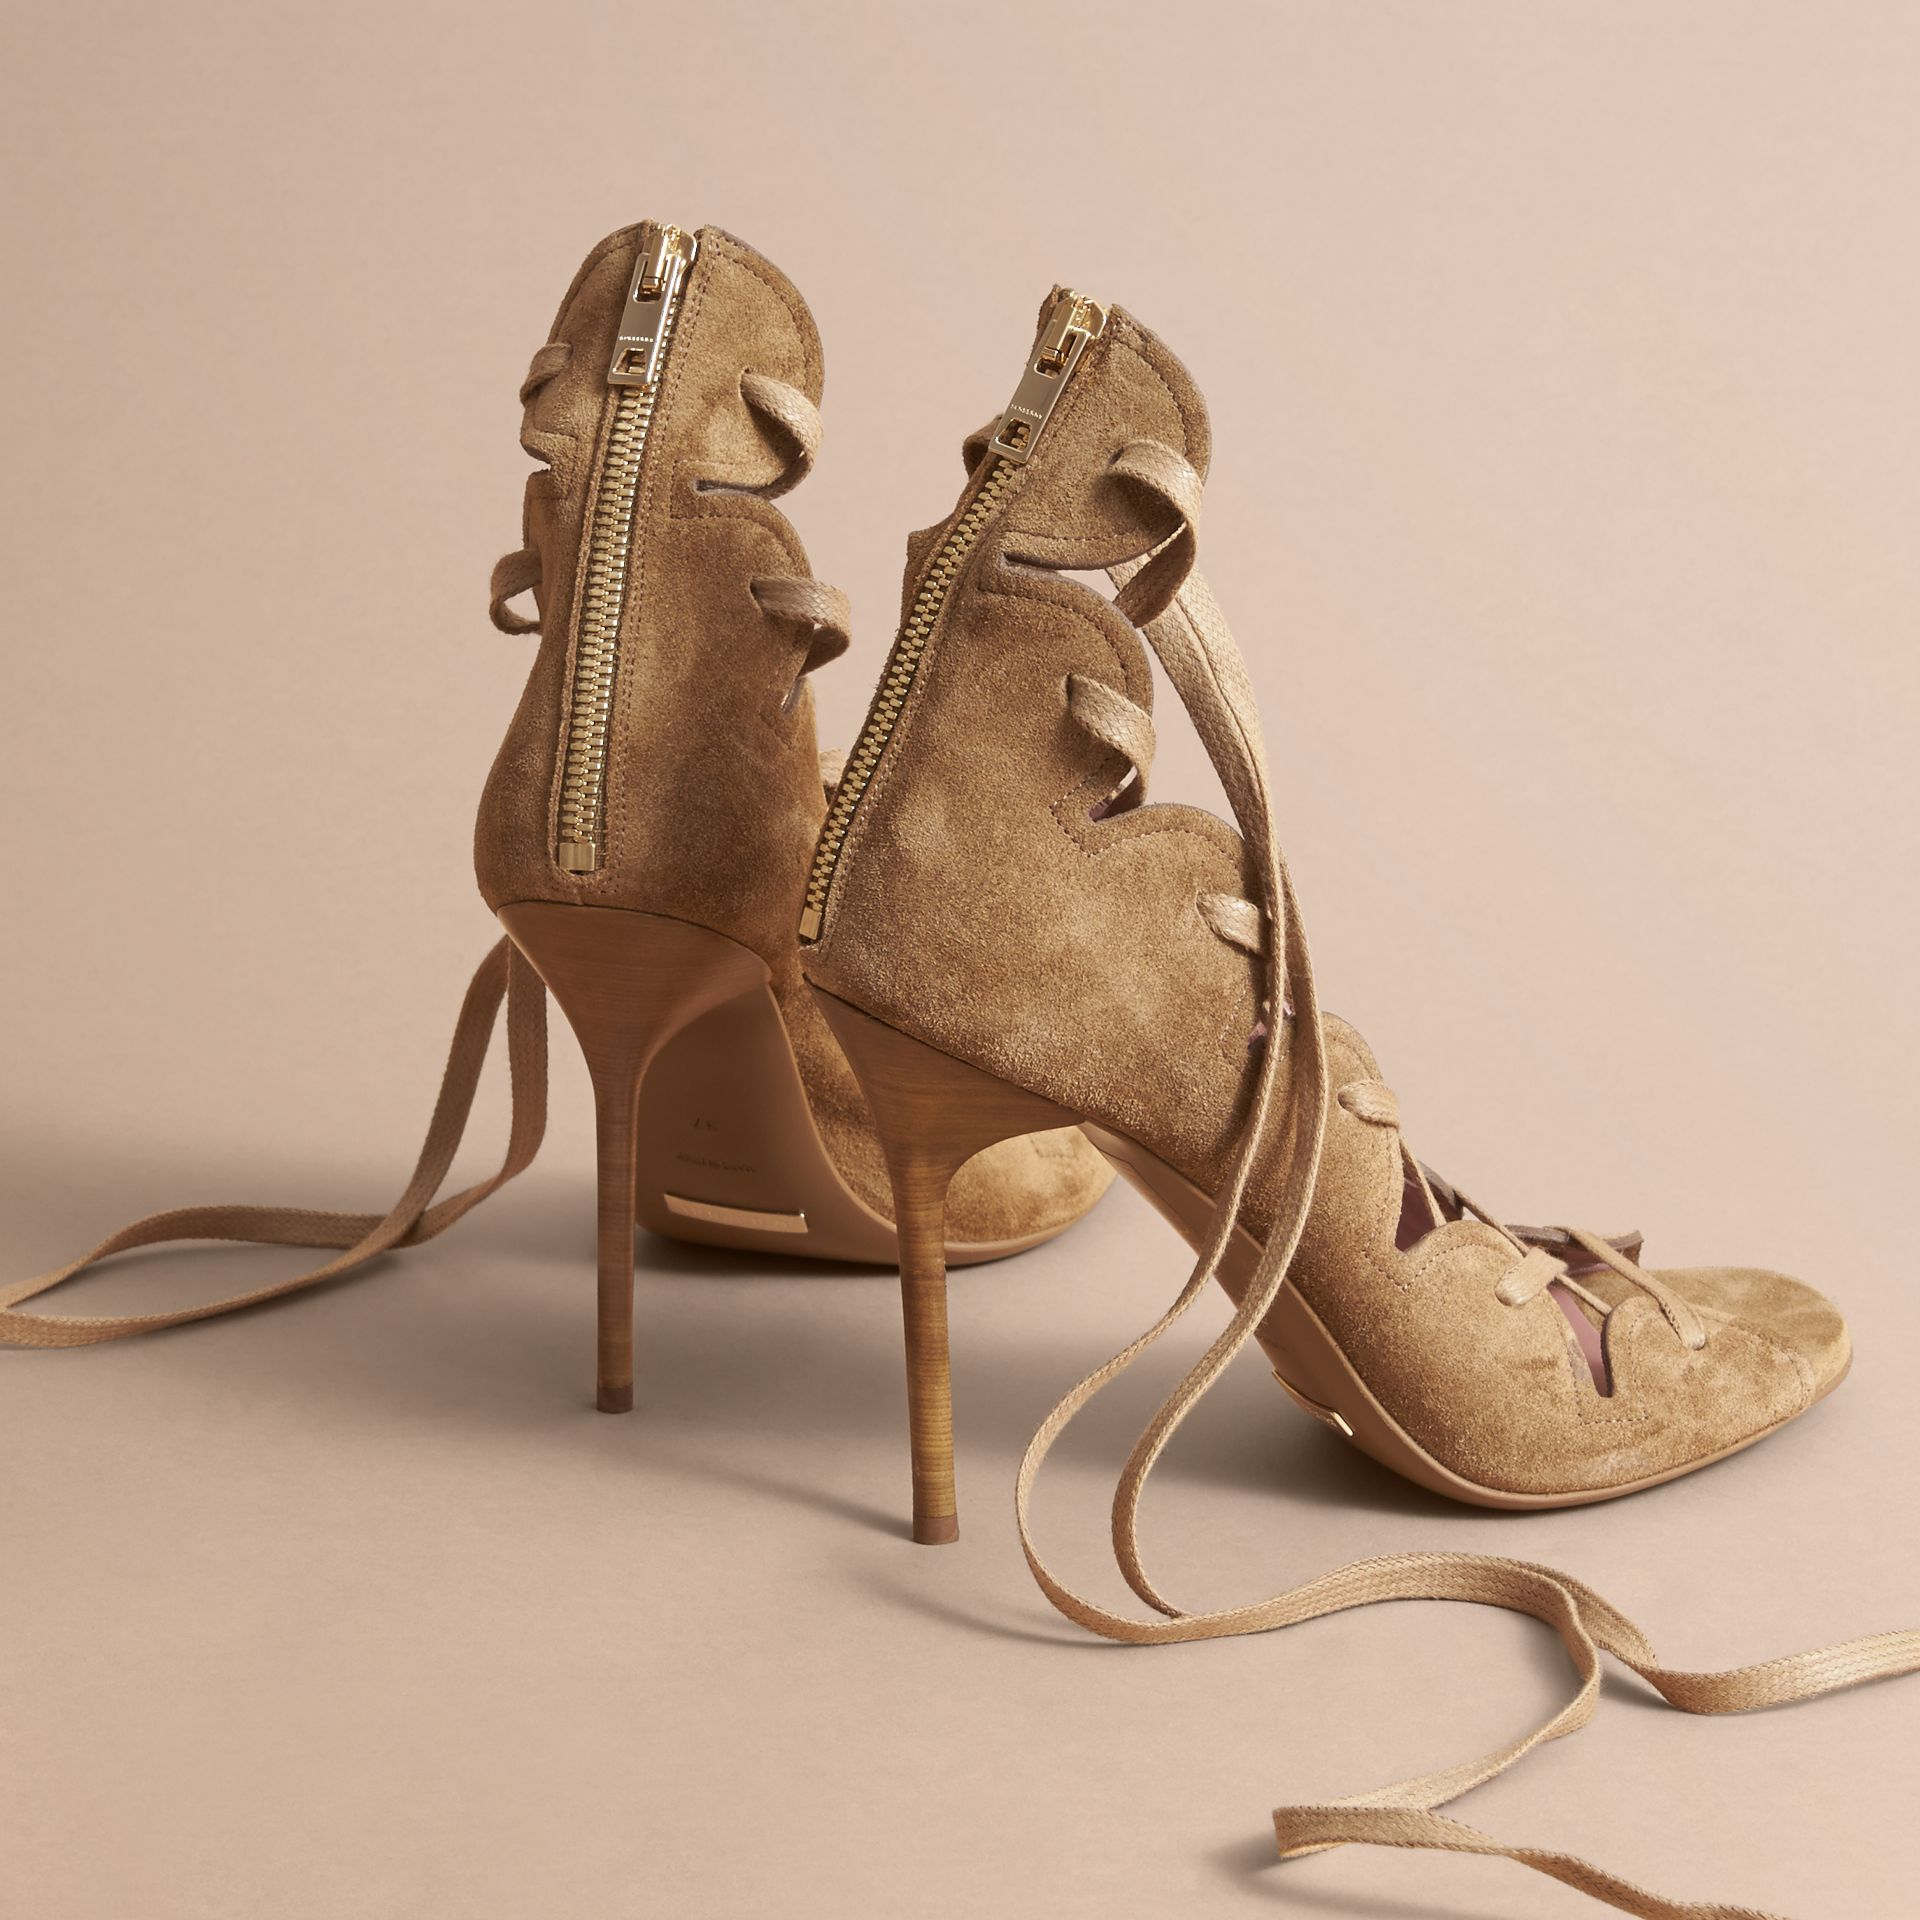 Scalloped Suede Lace-up Sandals in Sandstone - Women | Burberry - gallery image 4